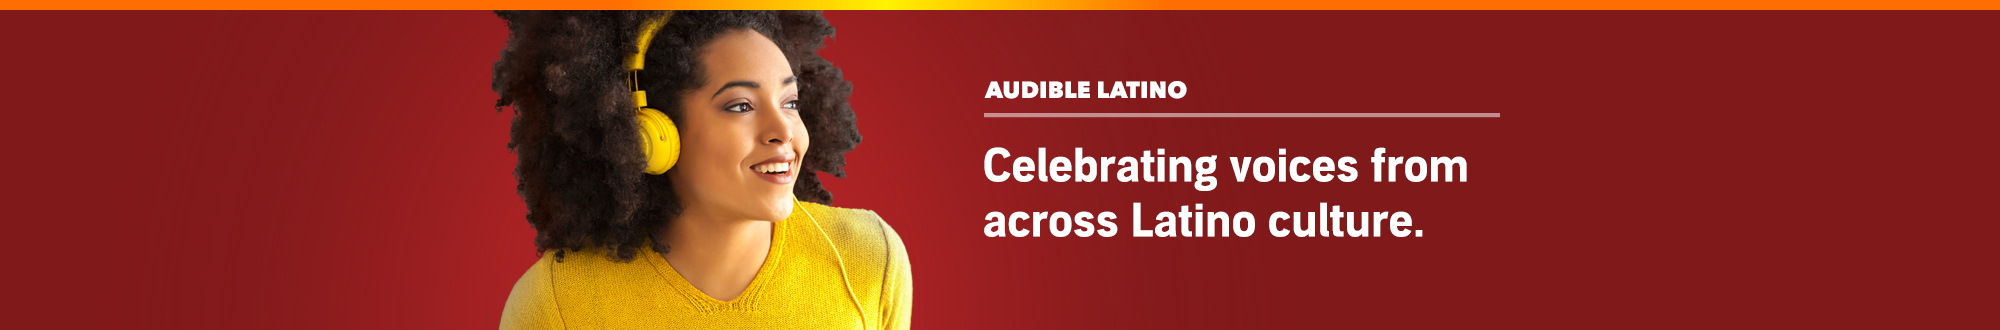 Audible Latino